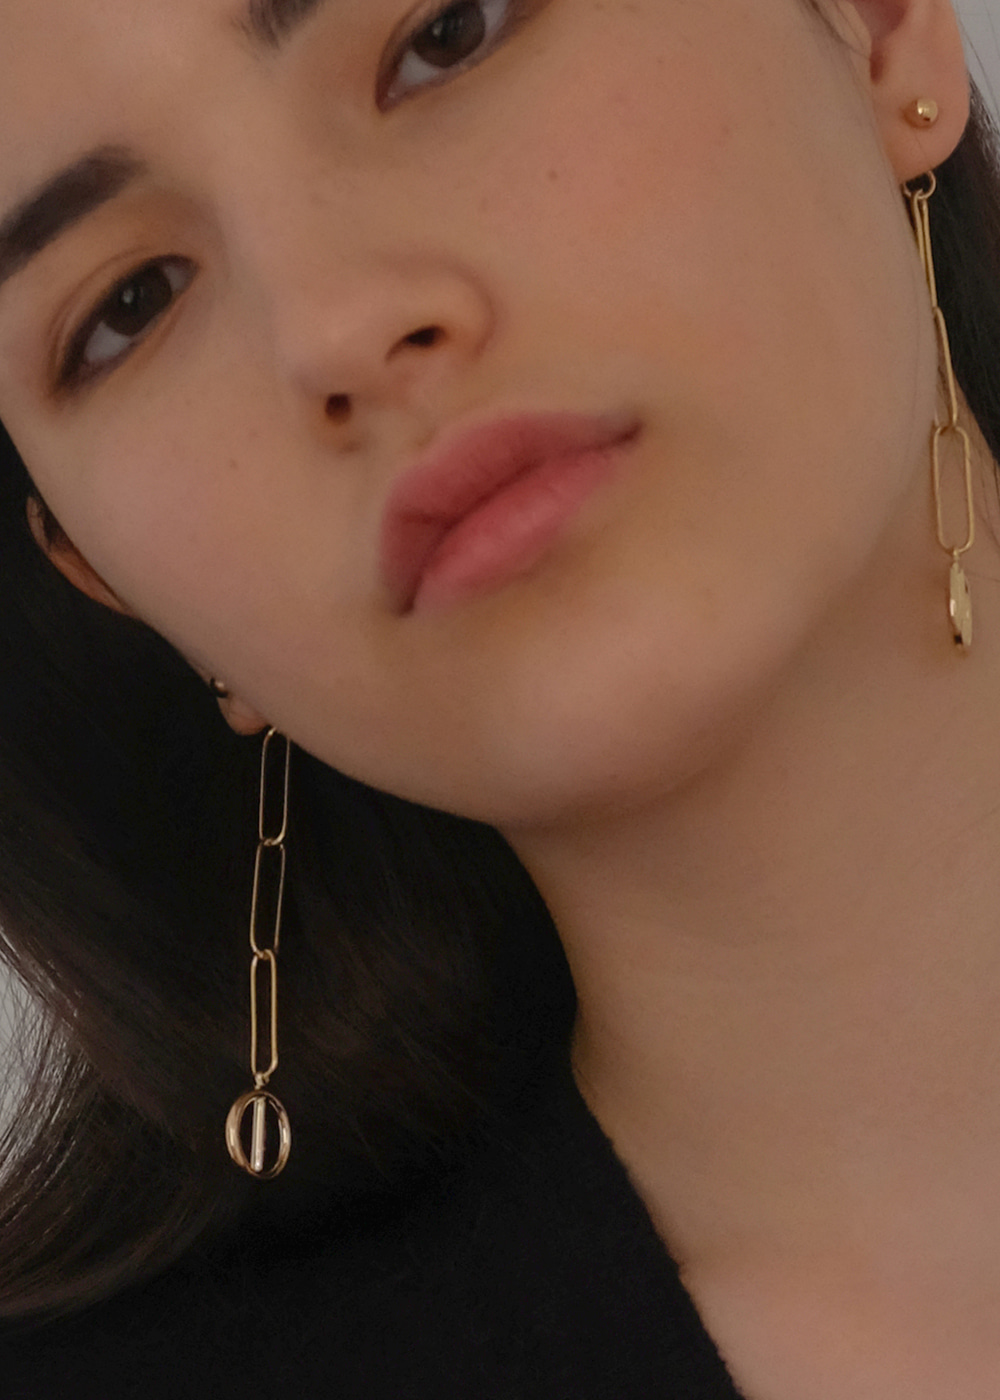 share chain earrings